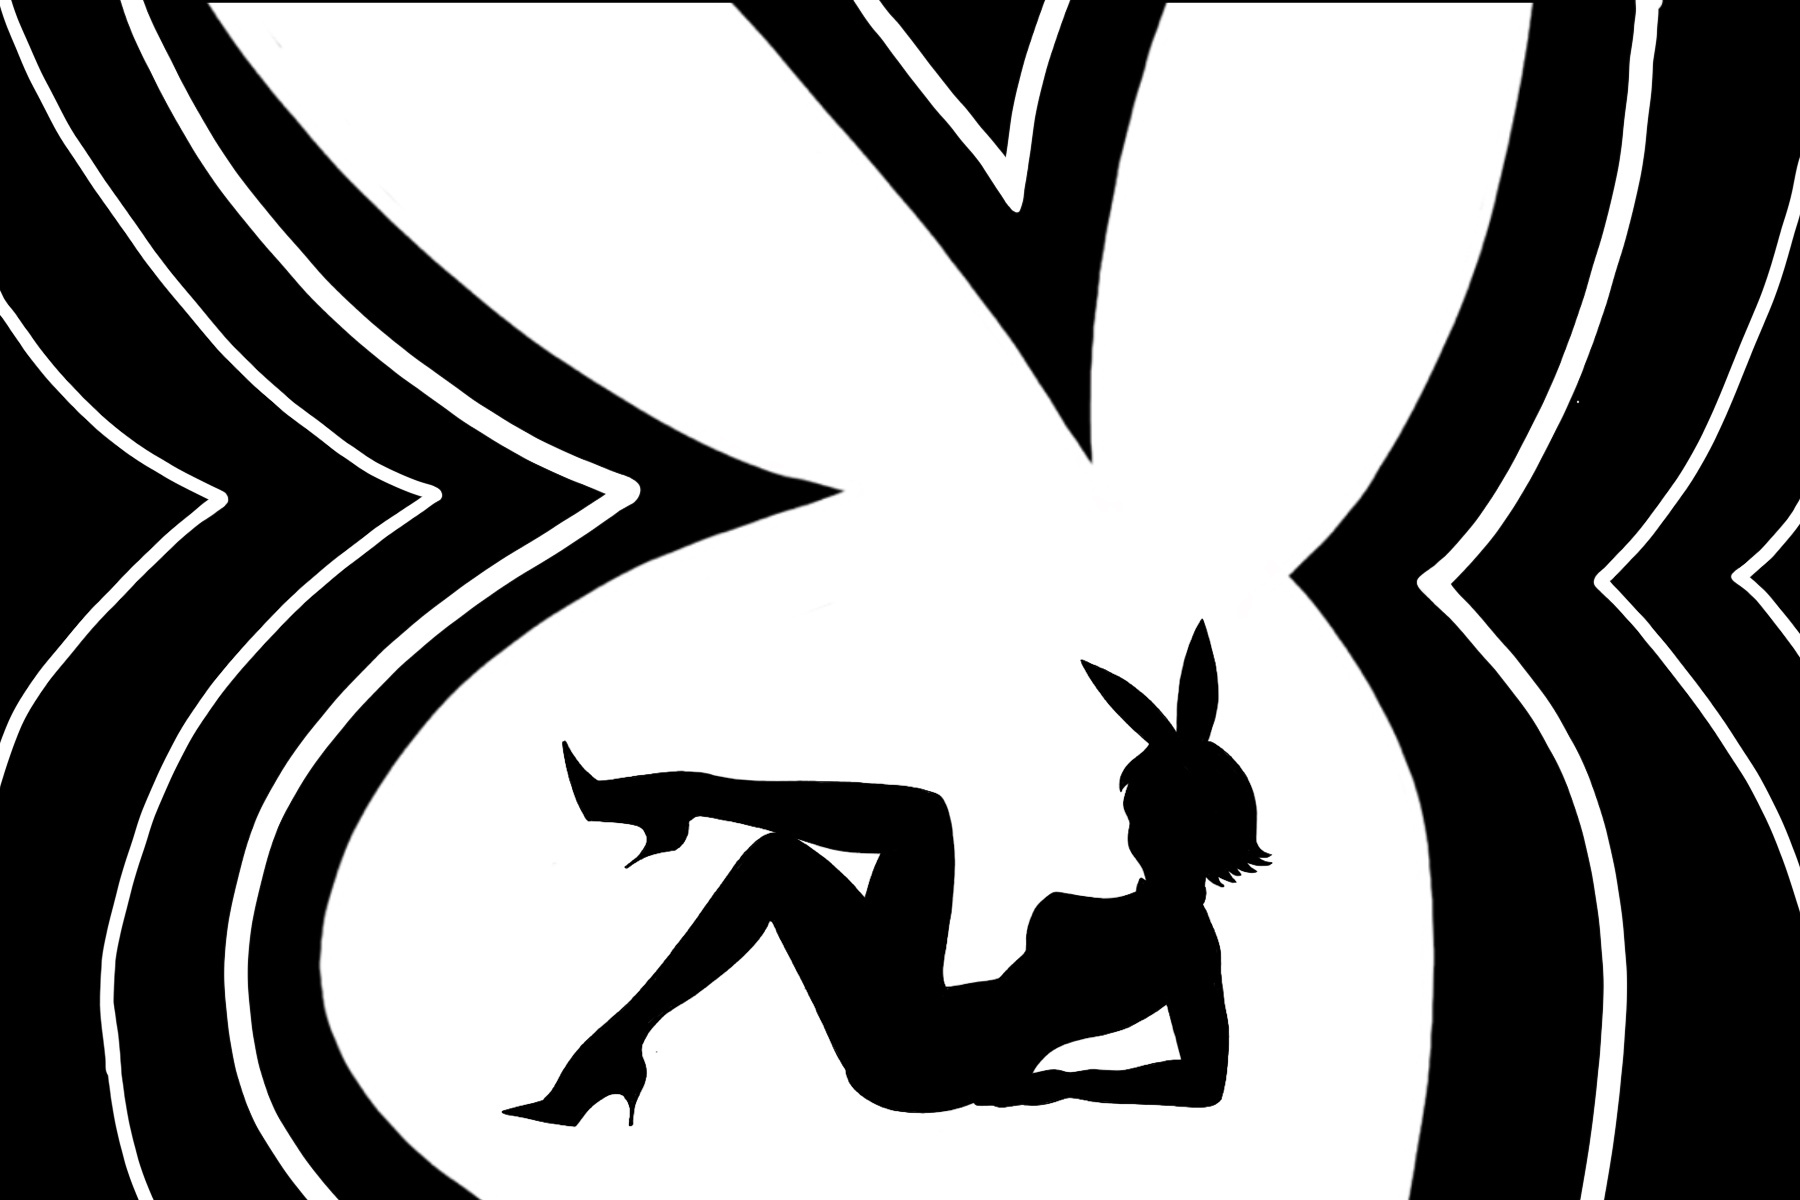 Illustration of a Playboy Bunny